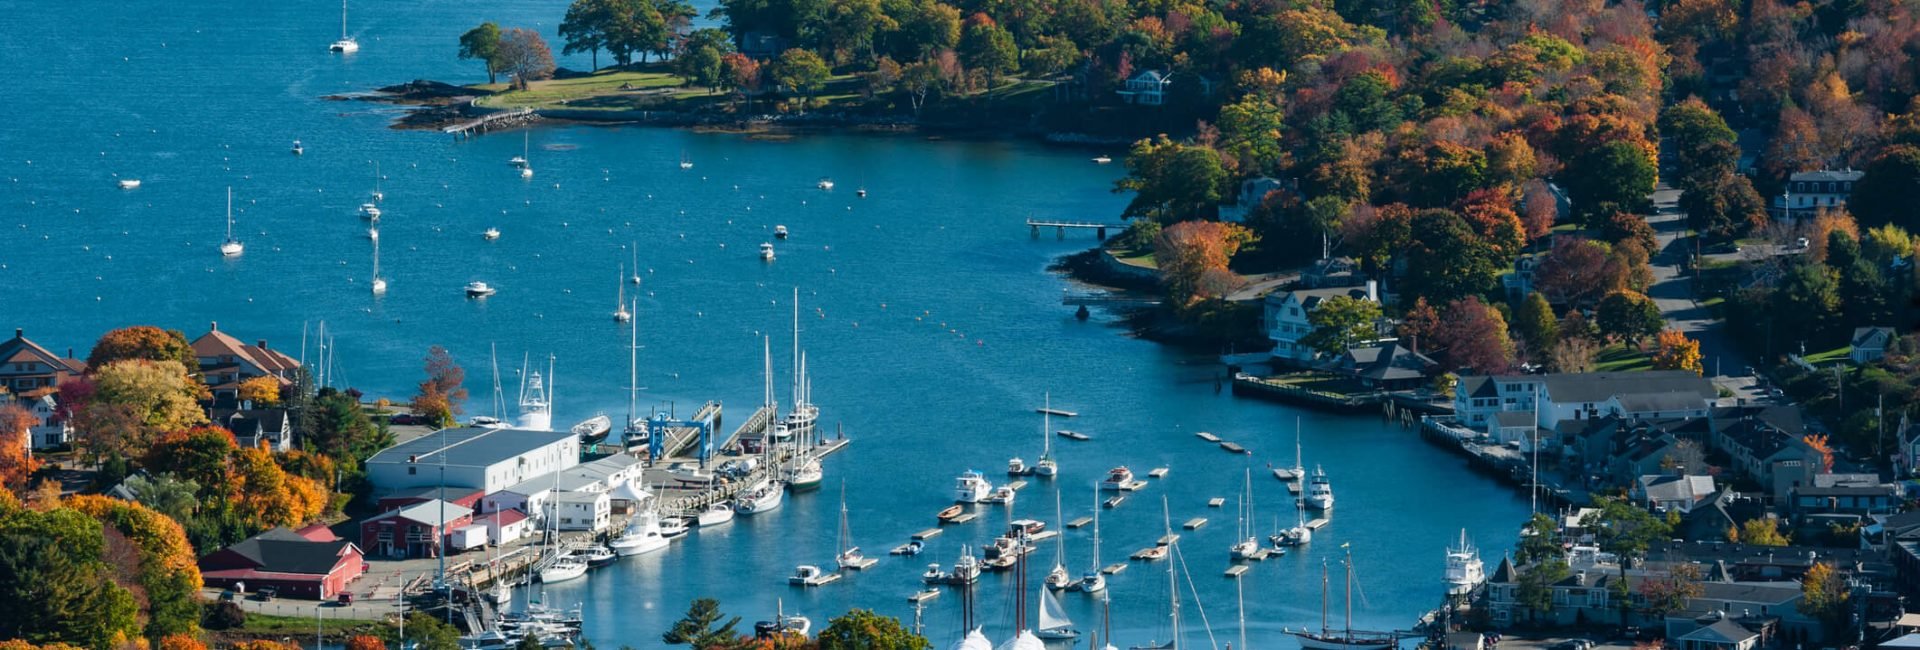 aerial view of camden maine harbor in fall 1